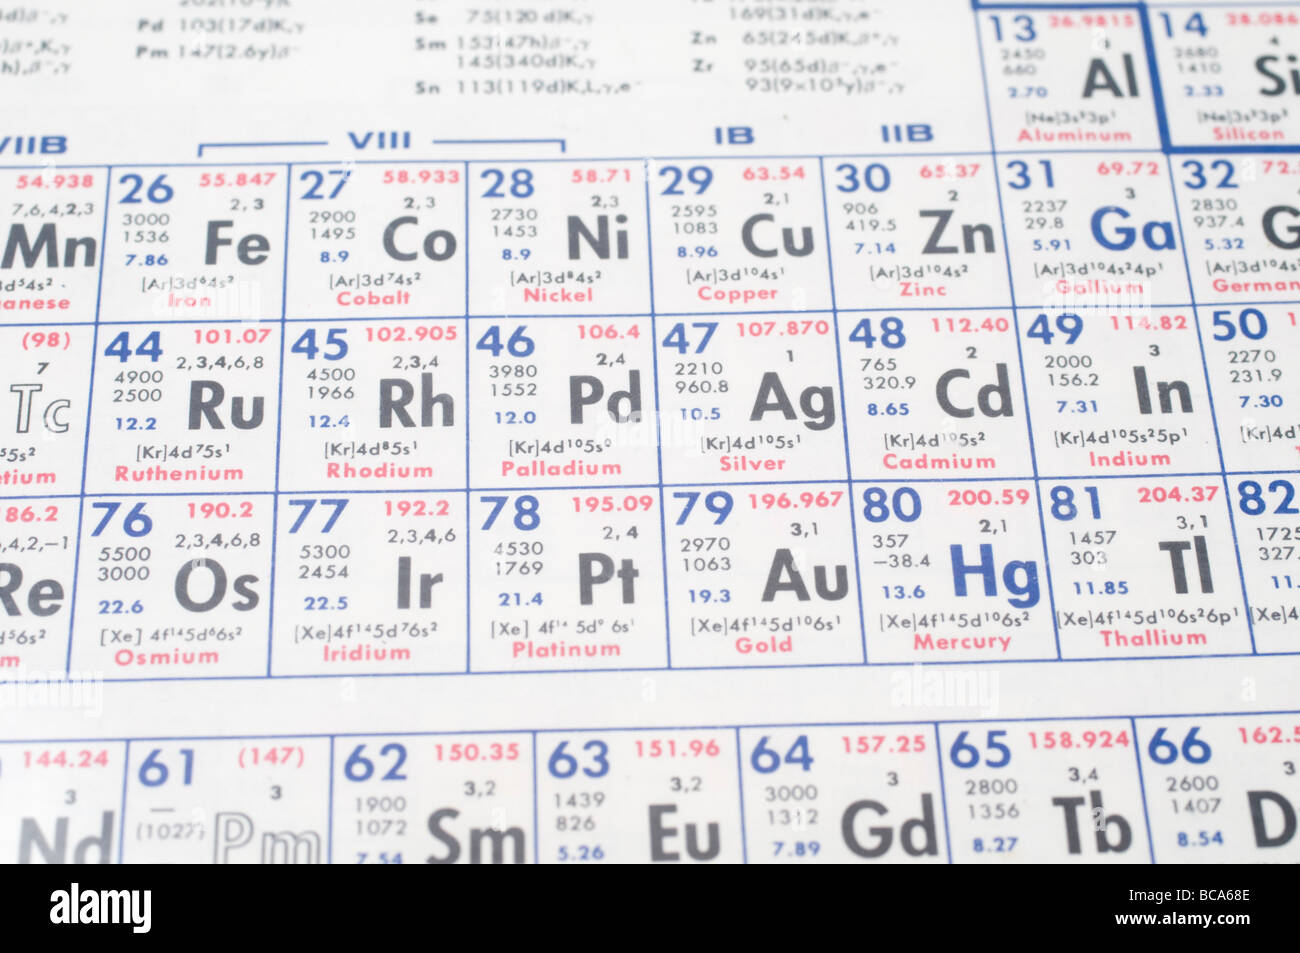 Chemical periodic table selective focus The periodic table shows the chemical elements ordered by atomic number Stock Photo